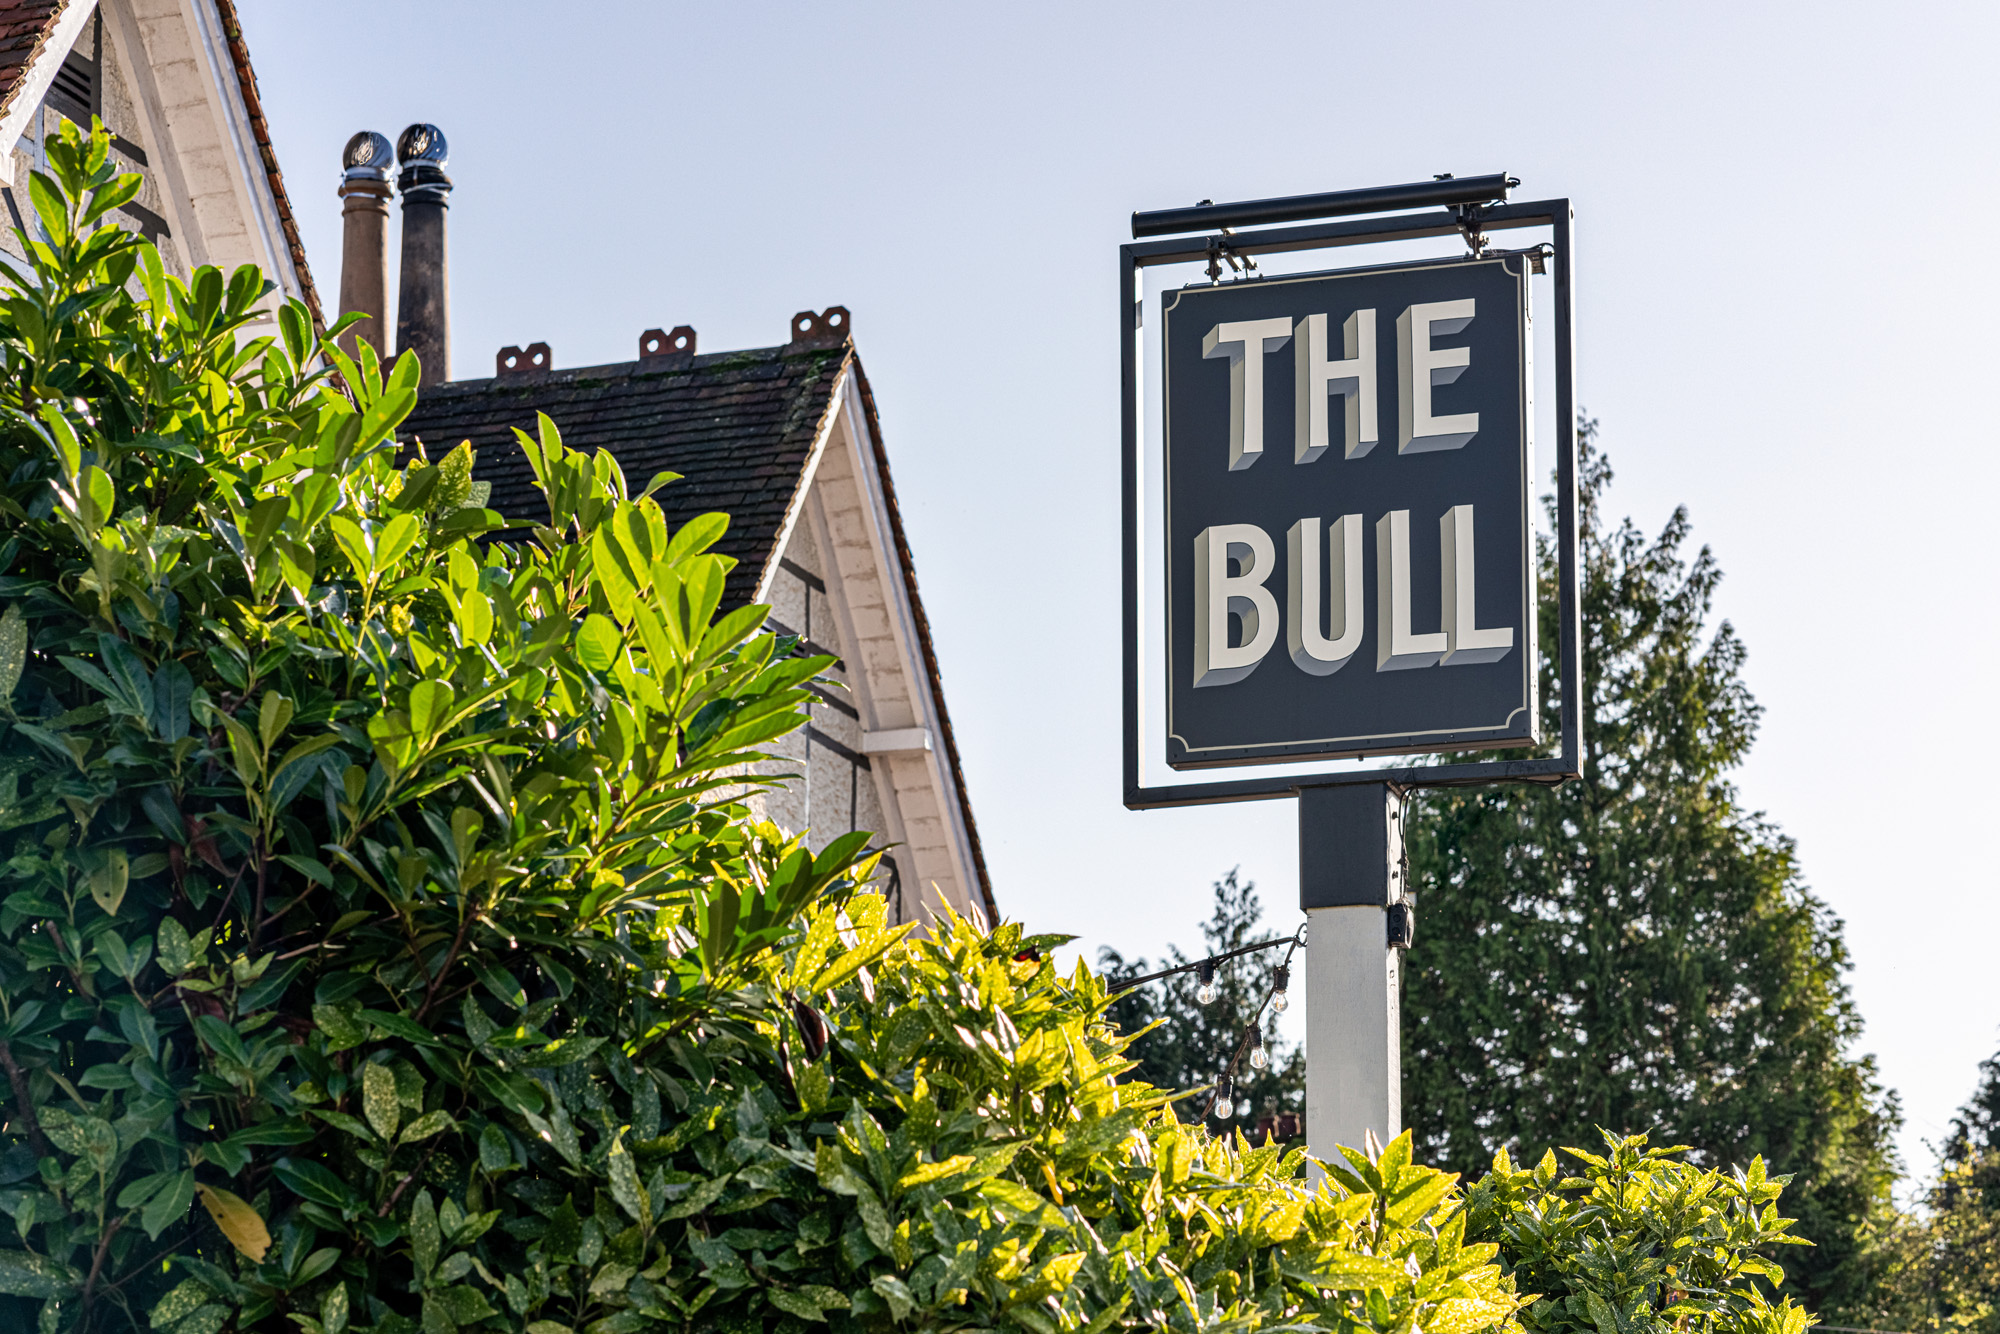 Bull, Tunbridge Wells